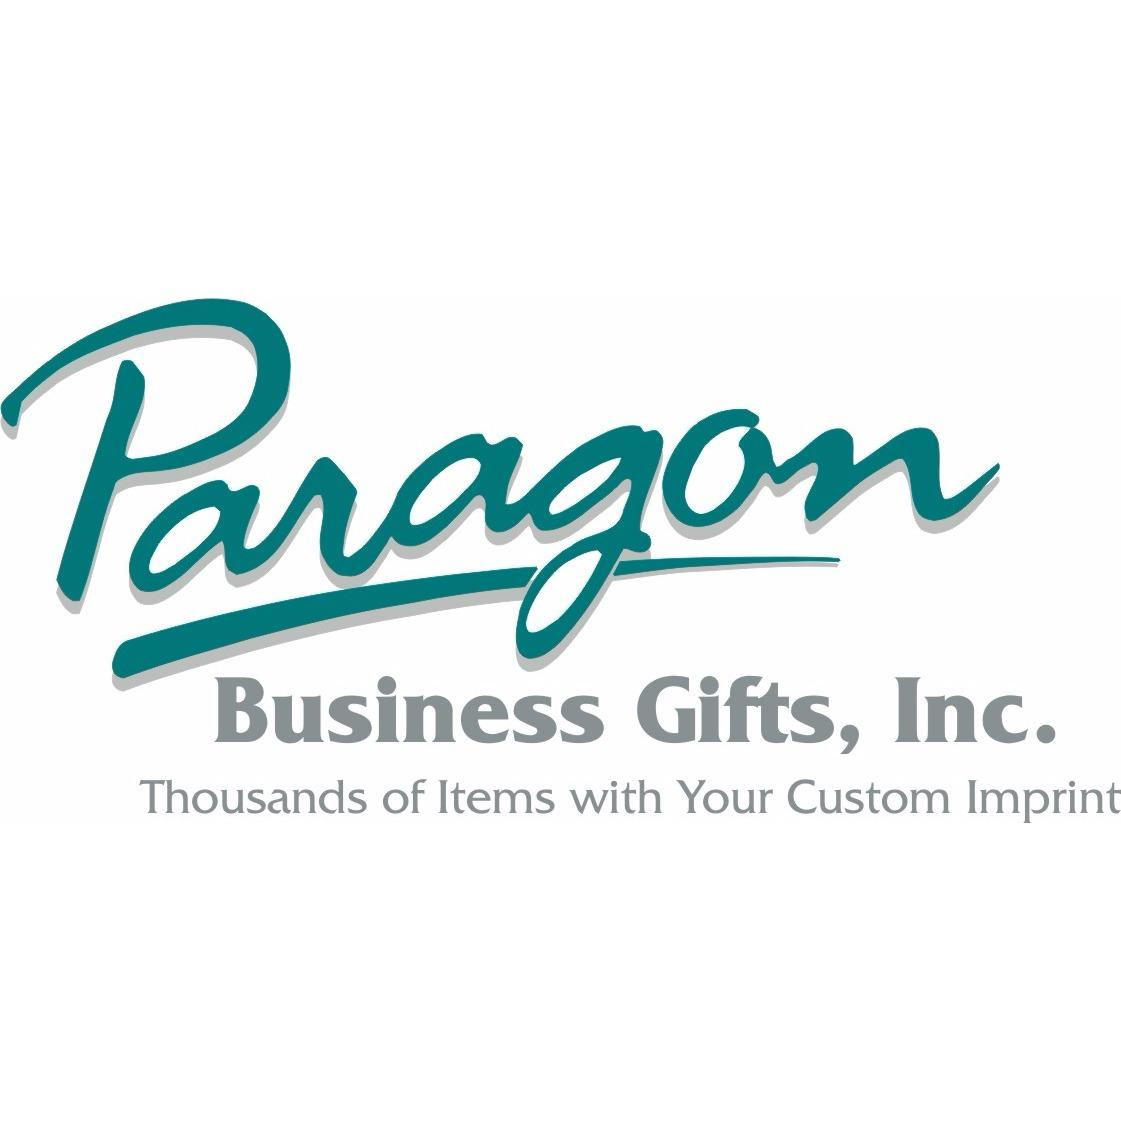 Paragon Business Gifts, Inc.